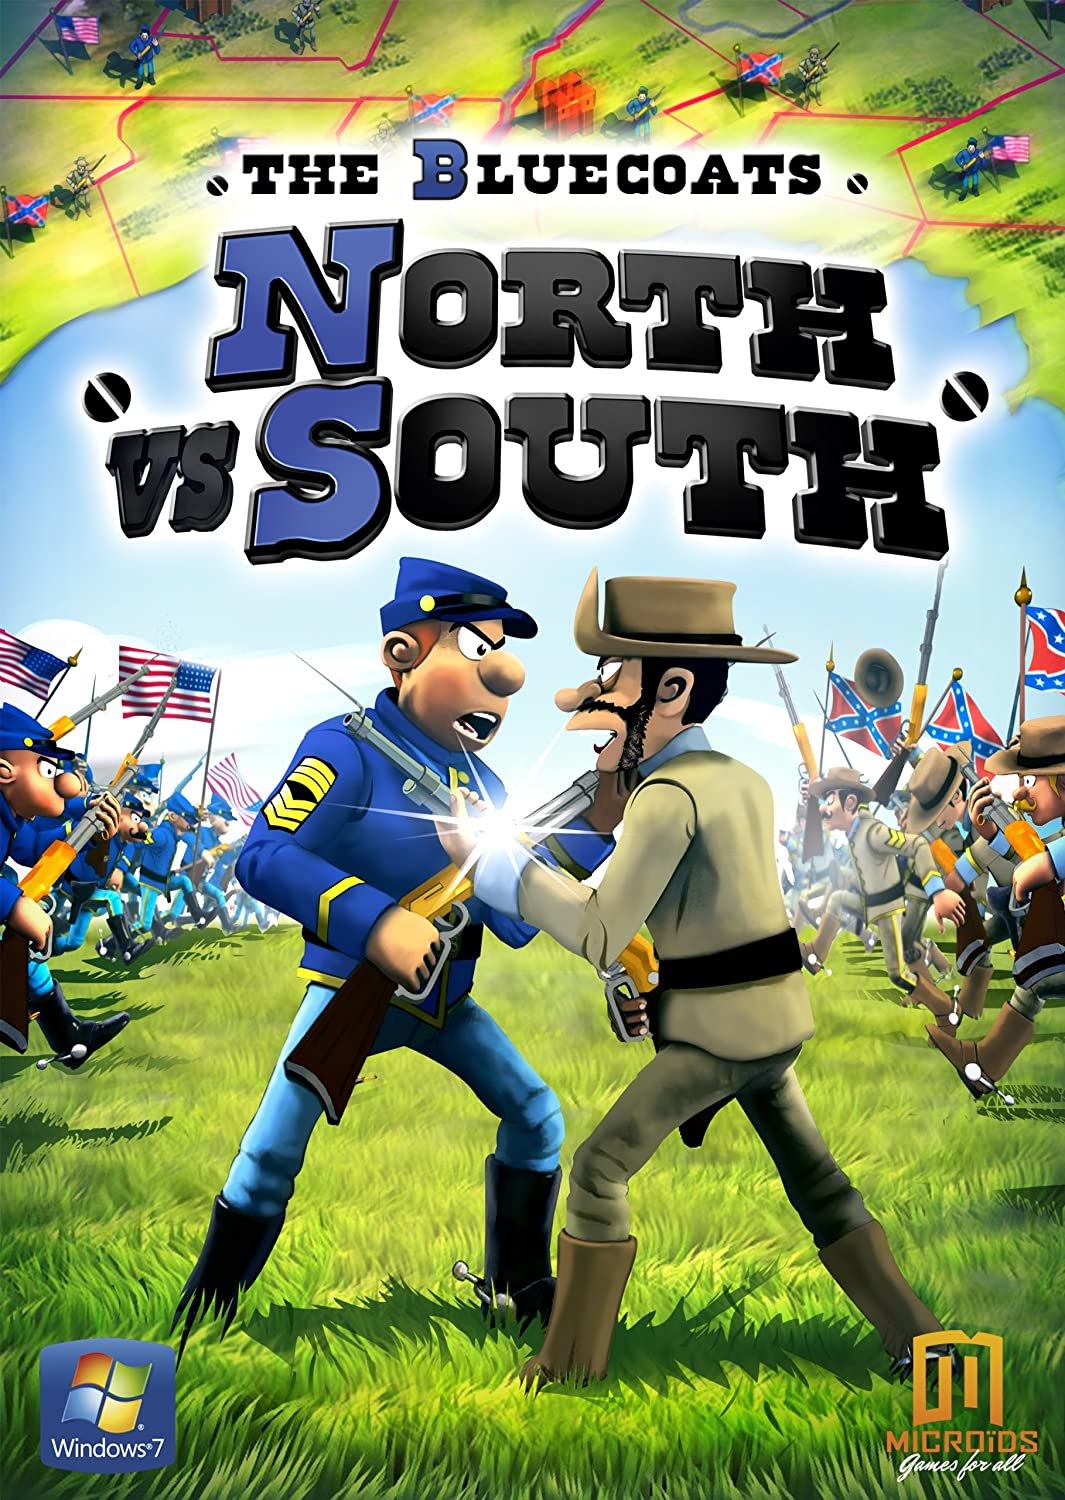 amazoncom the bluecoats north vs south download video games 91qetgwx8il b00893ljqe north usa vs south usa north usa vs south usa